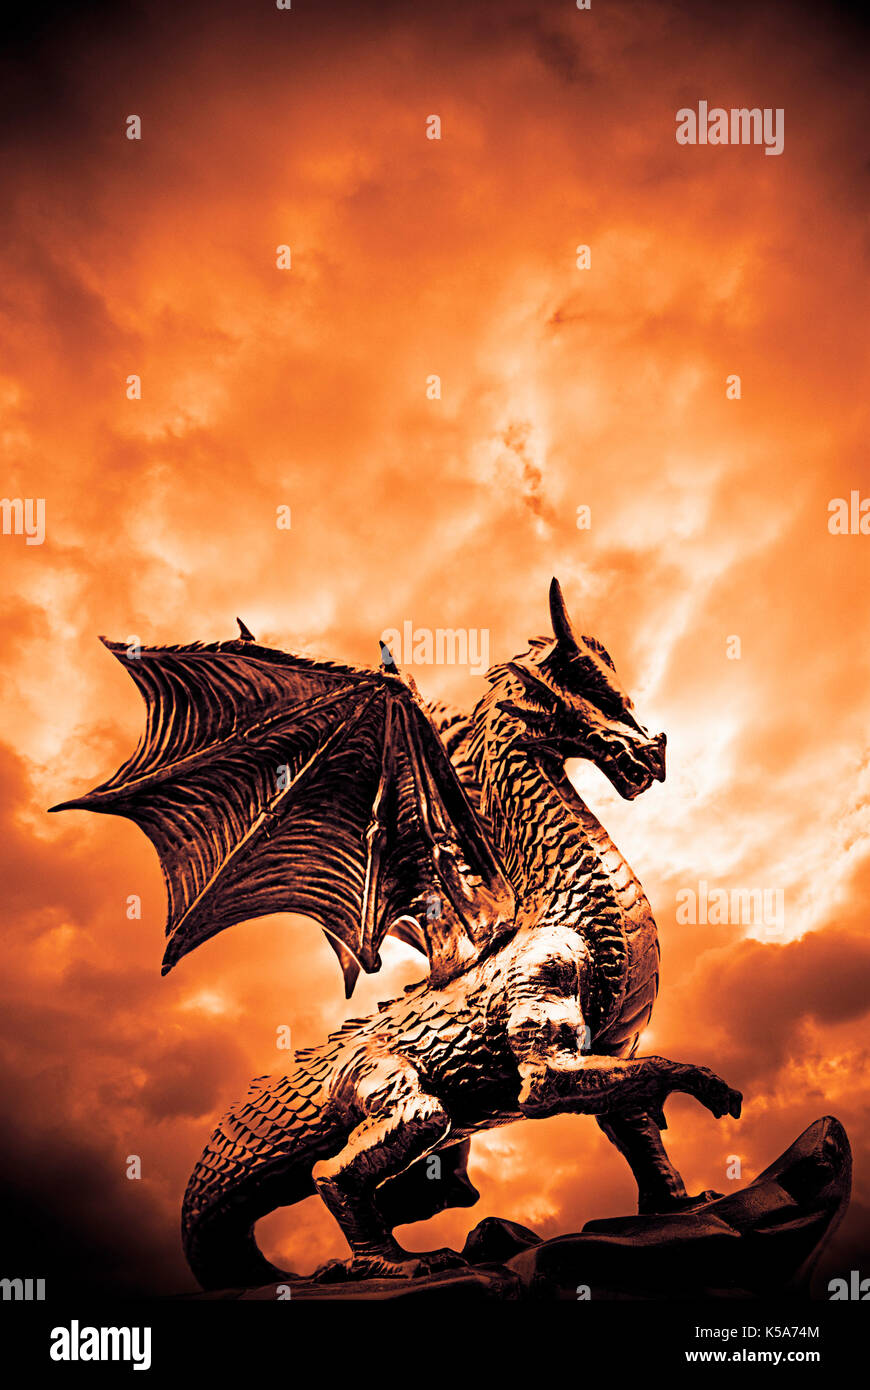 dragon statue with red dramatic sky - Stock Image